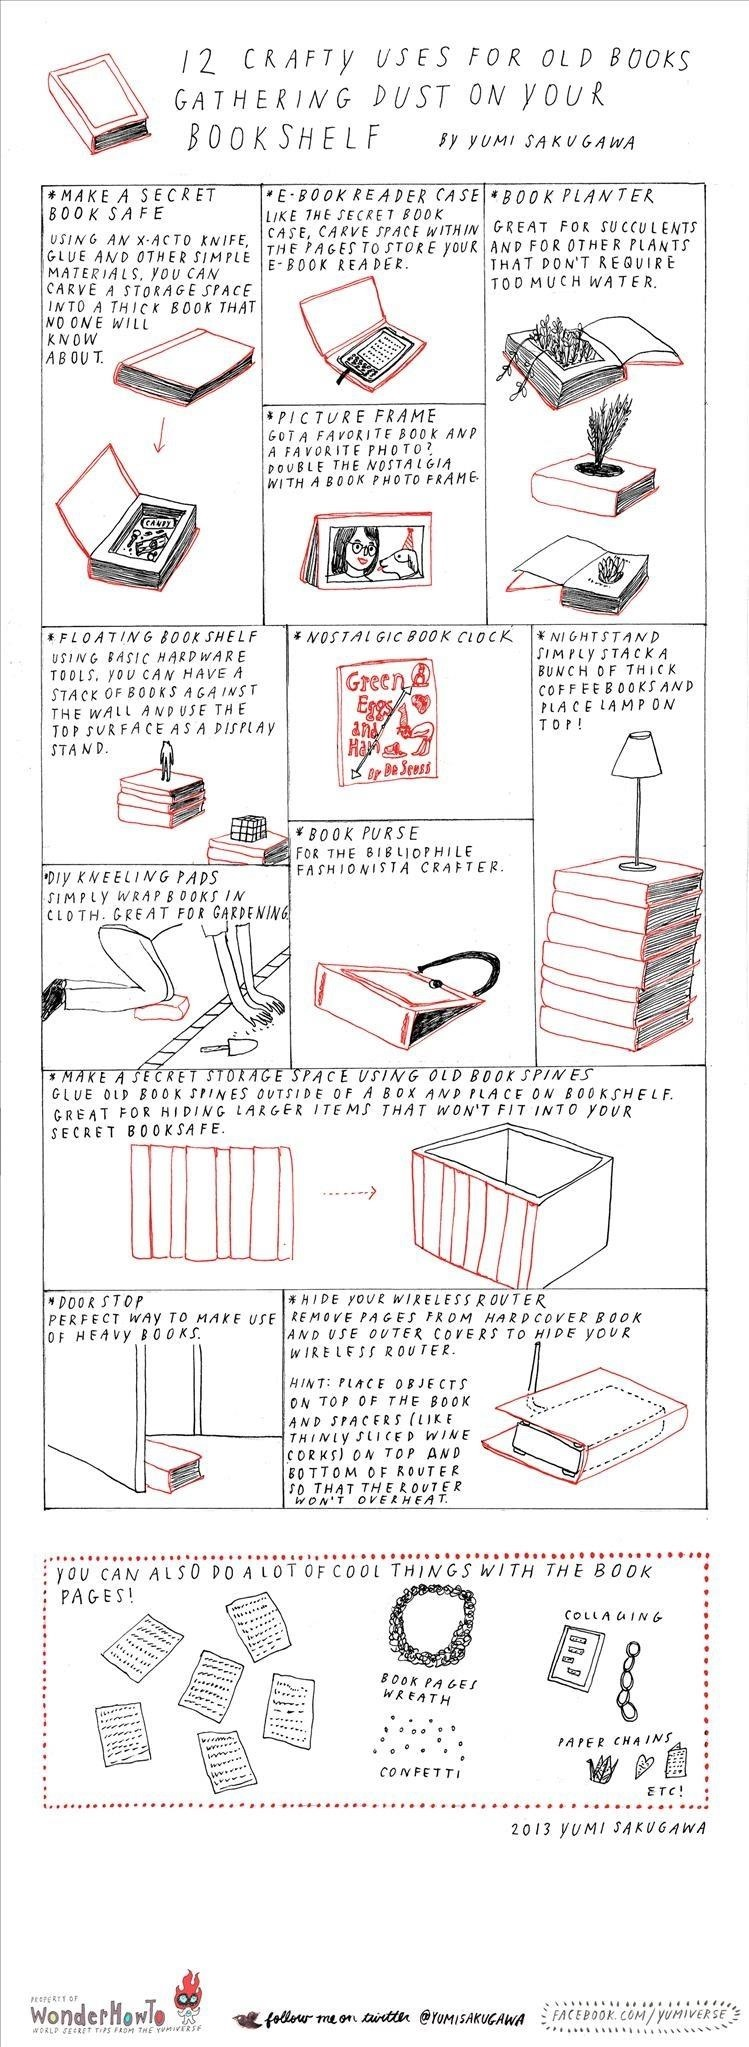 12 Crafty Uses for Those Old Books Gathering Dust on Your Bookshelf